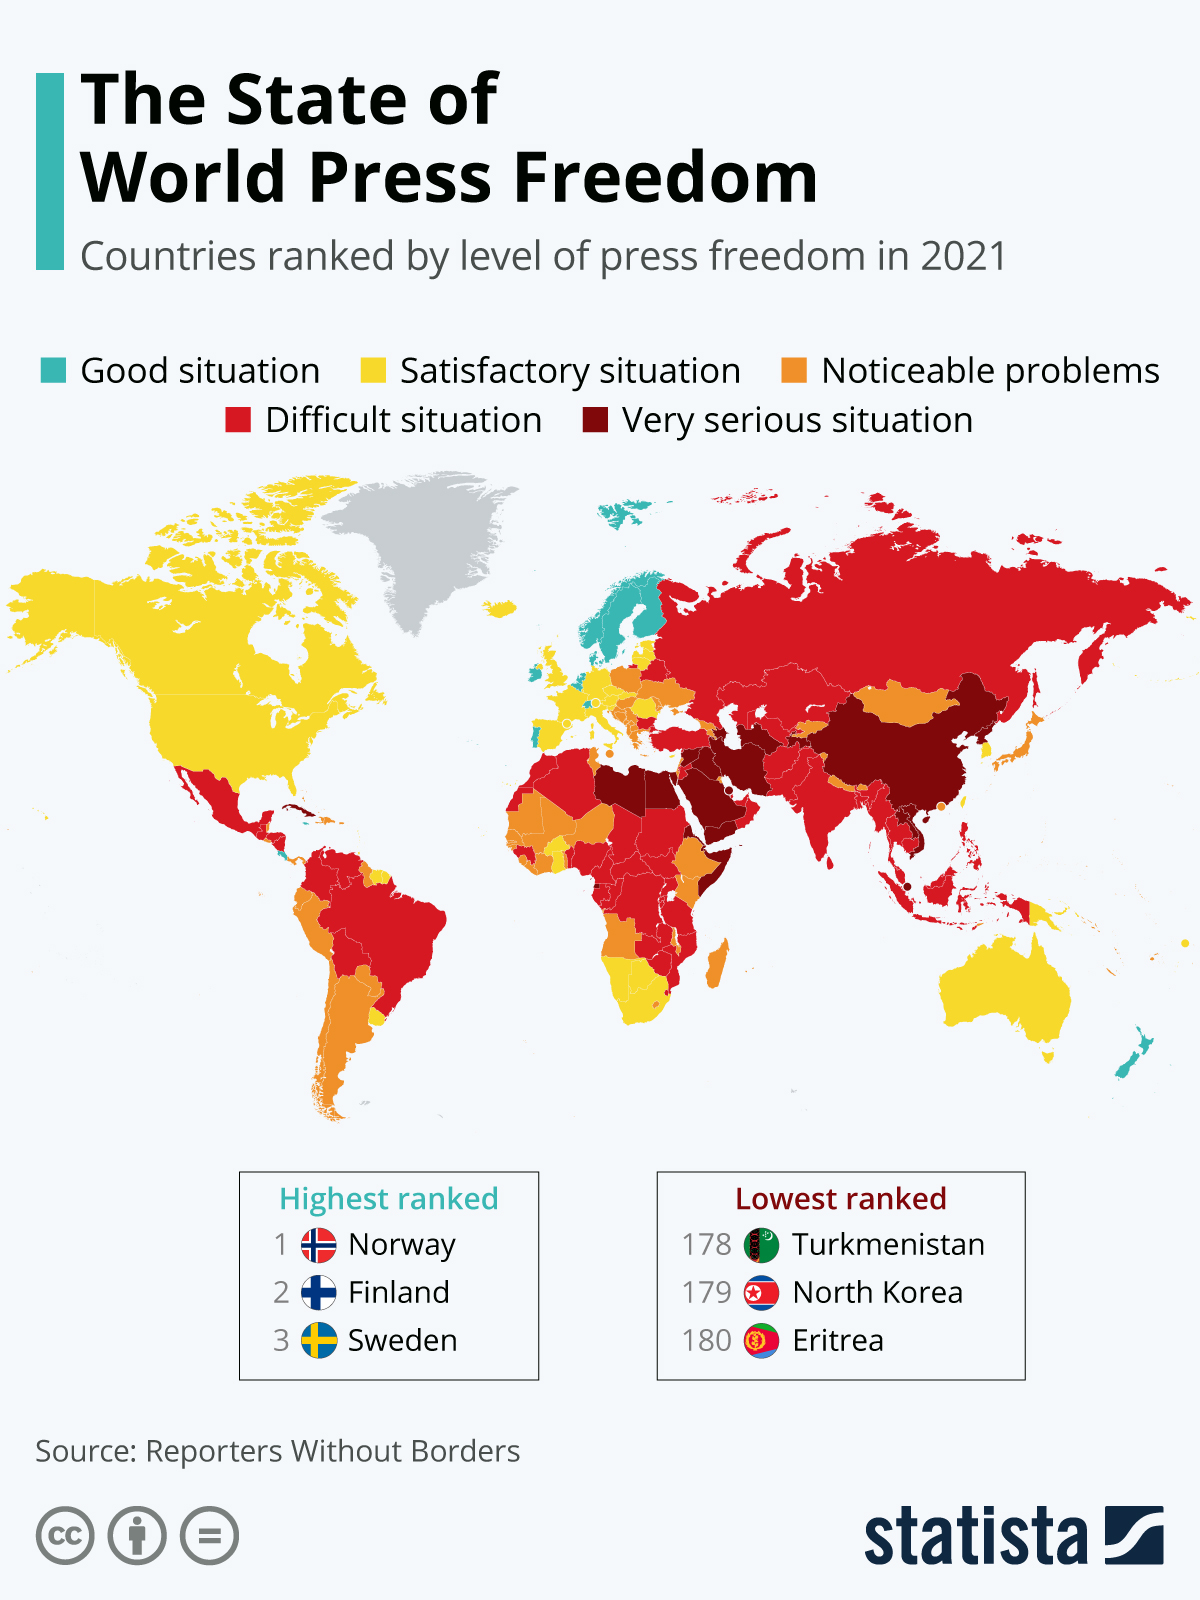 Map Showing The State of World Press Freedom